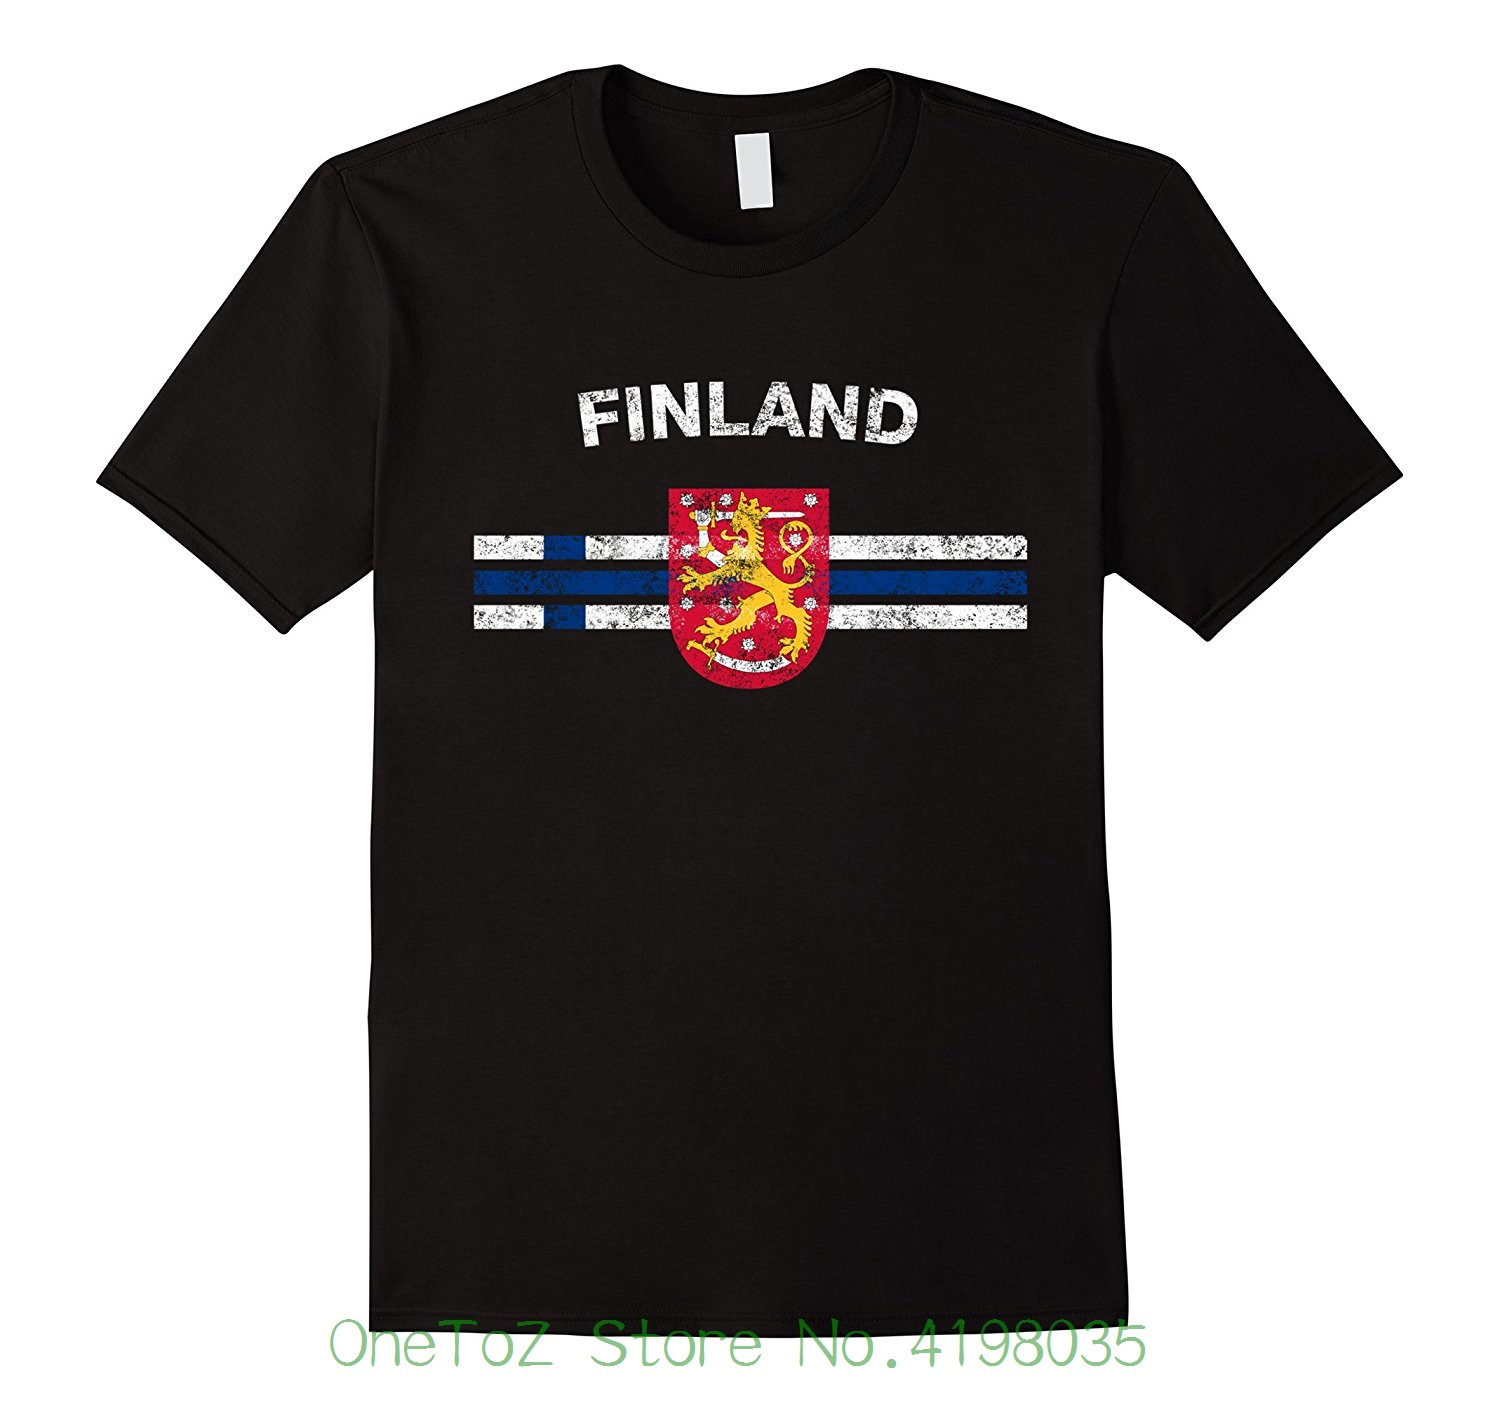 Finnish <font><b>Flag</b></font> <font><b>Shirt</b></font> - Finnish Emblem & <font><b>Finland</b></font> <font><b>Flag</b></font> <font><b>Shirt</b></font> Pure Cotton Round Collar Men image